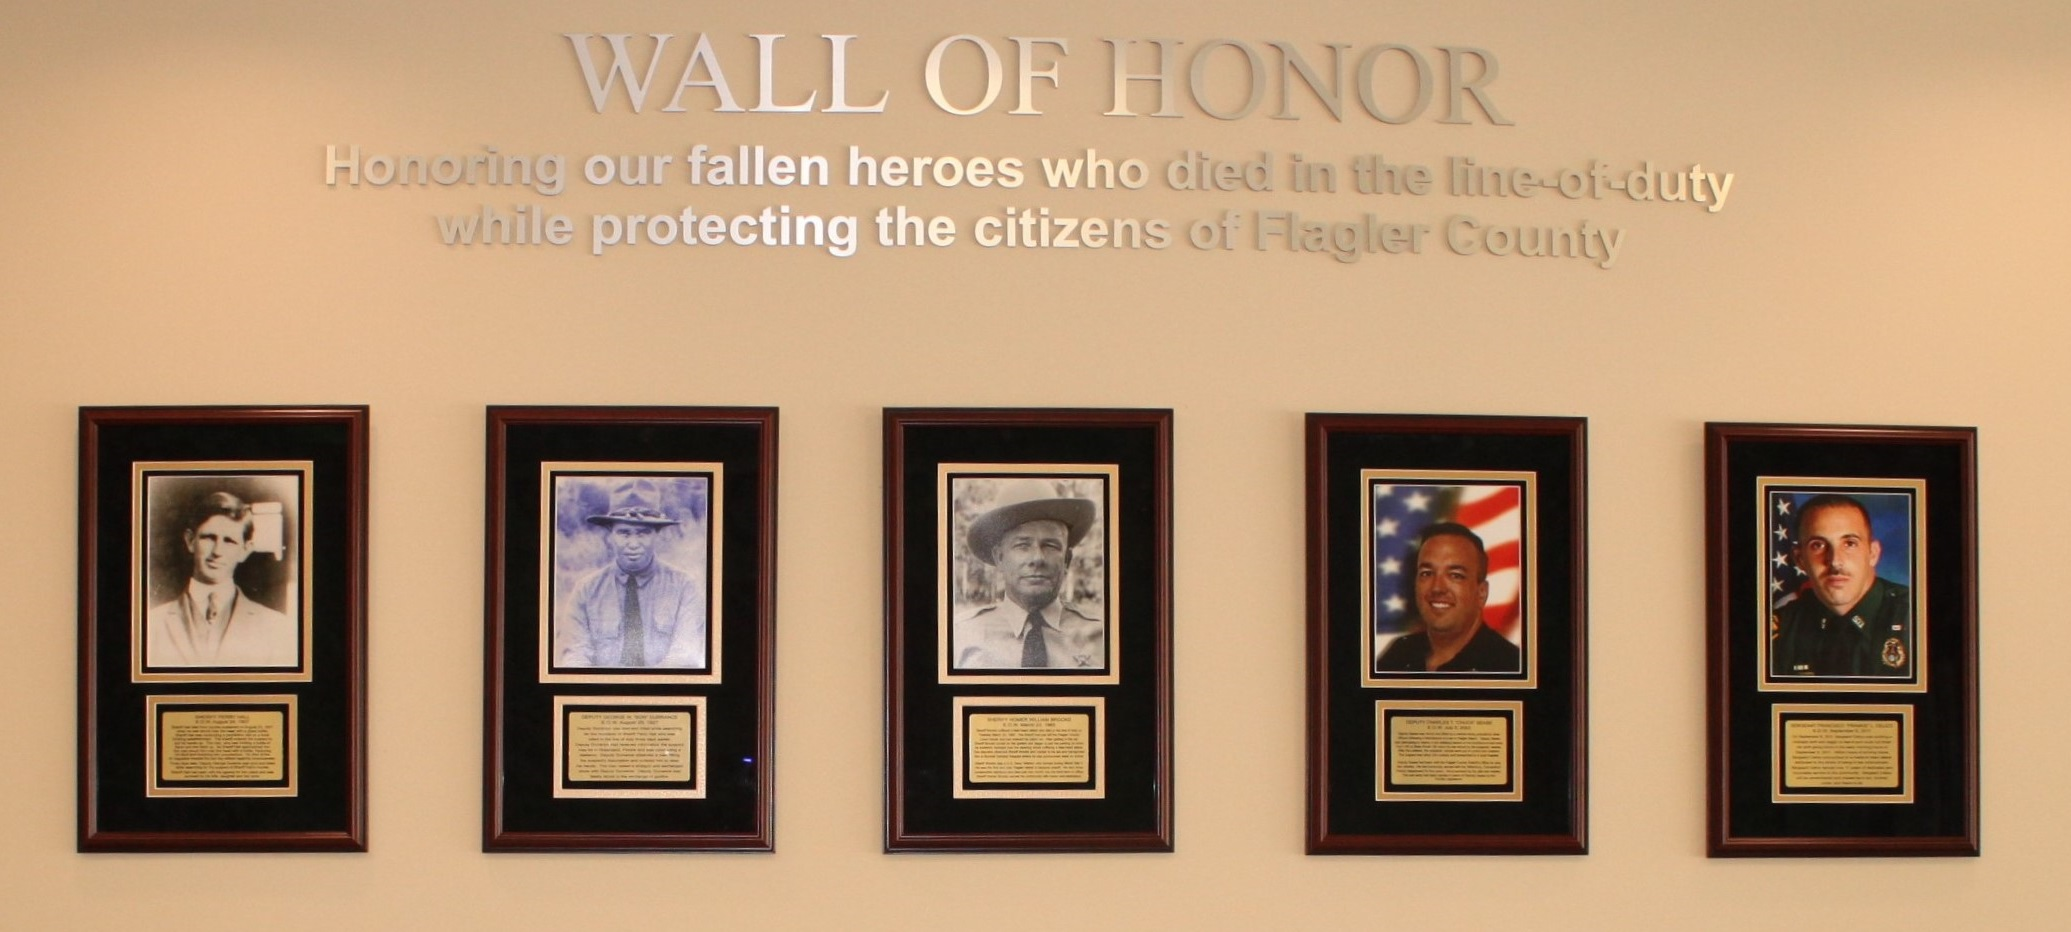 Wall of Honor, honoring our fallen heros who died in the line-of-duty while protecting the citizens of Flagler County